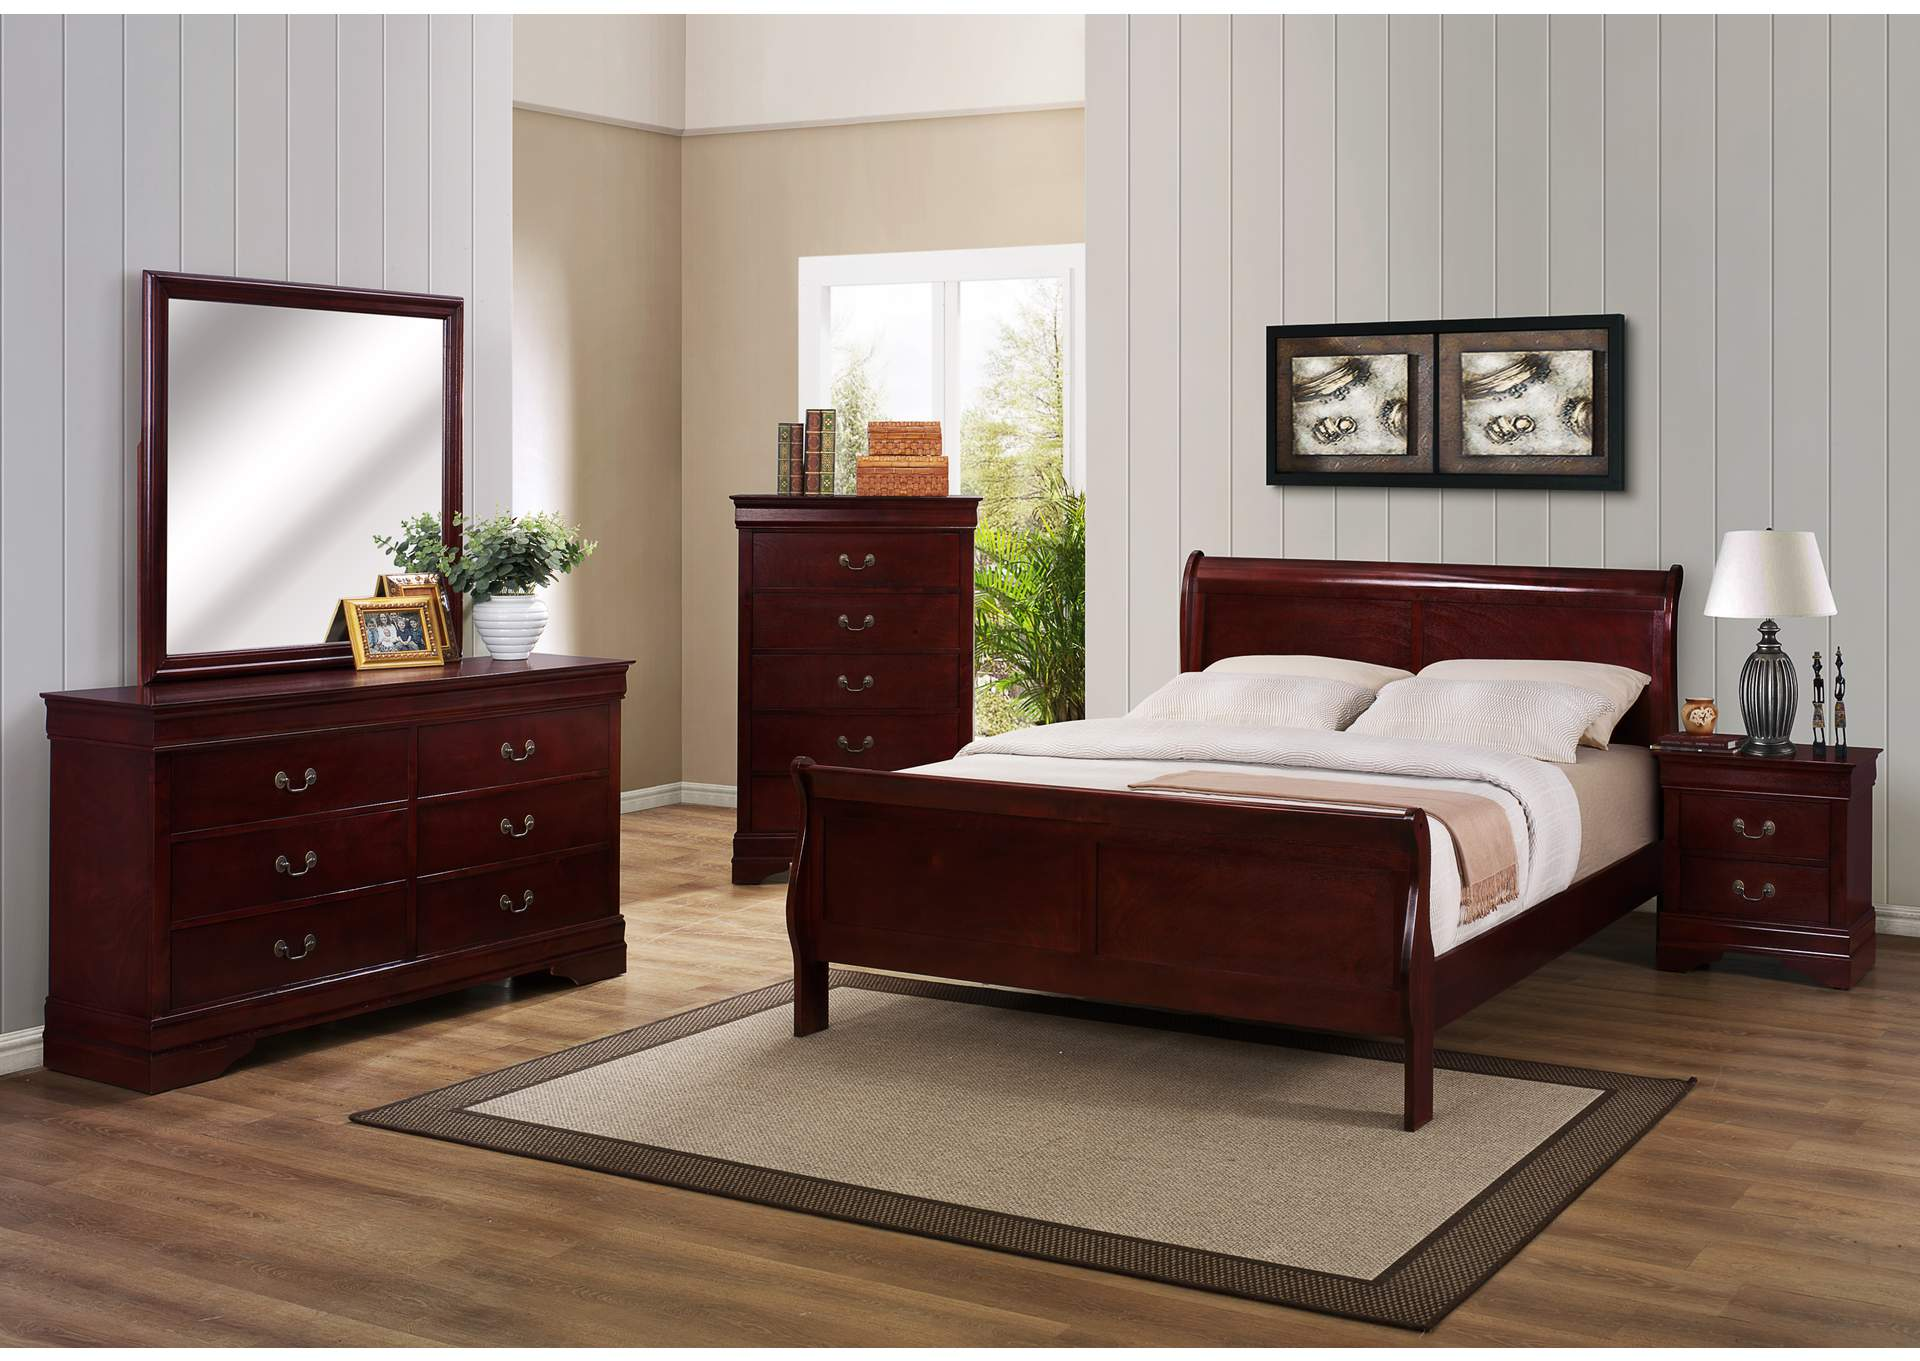 Louis Philip Cherry Queen Bed,Crown Mark